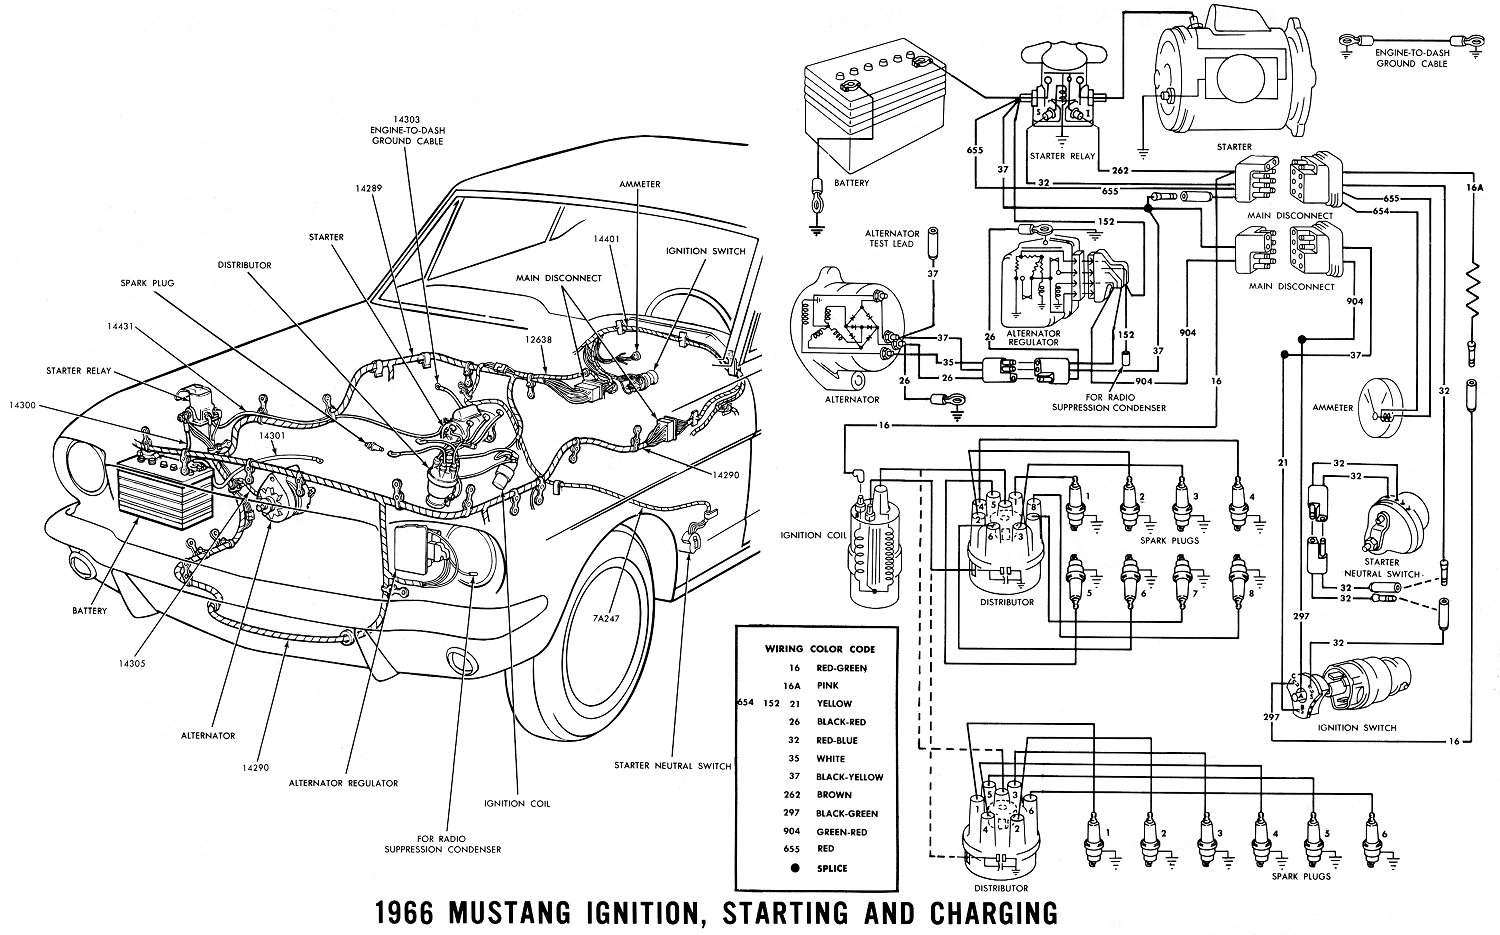 66ignit 1966 mustang wiring diagrams average joe restoration 65 mustang engine wiring diagram at soozxer.org